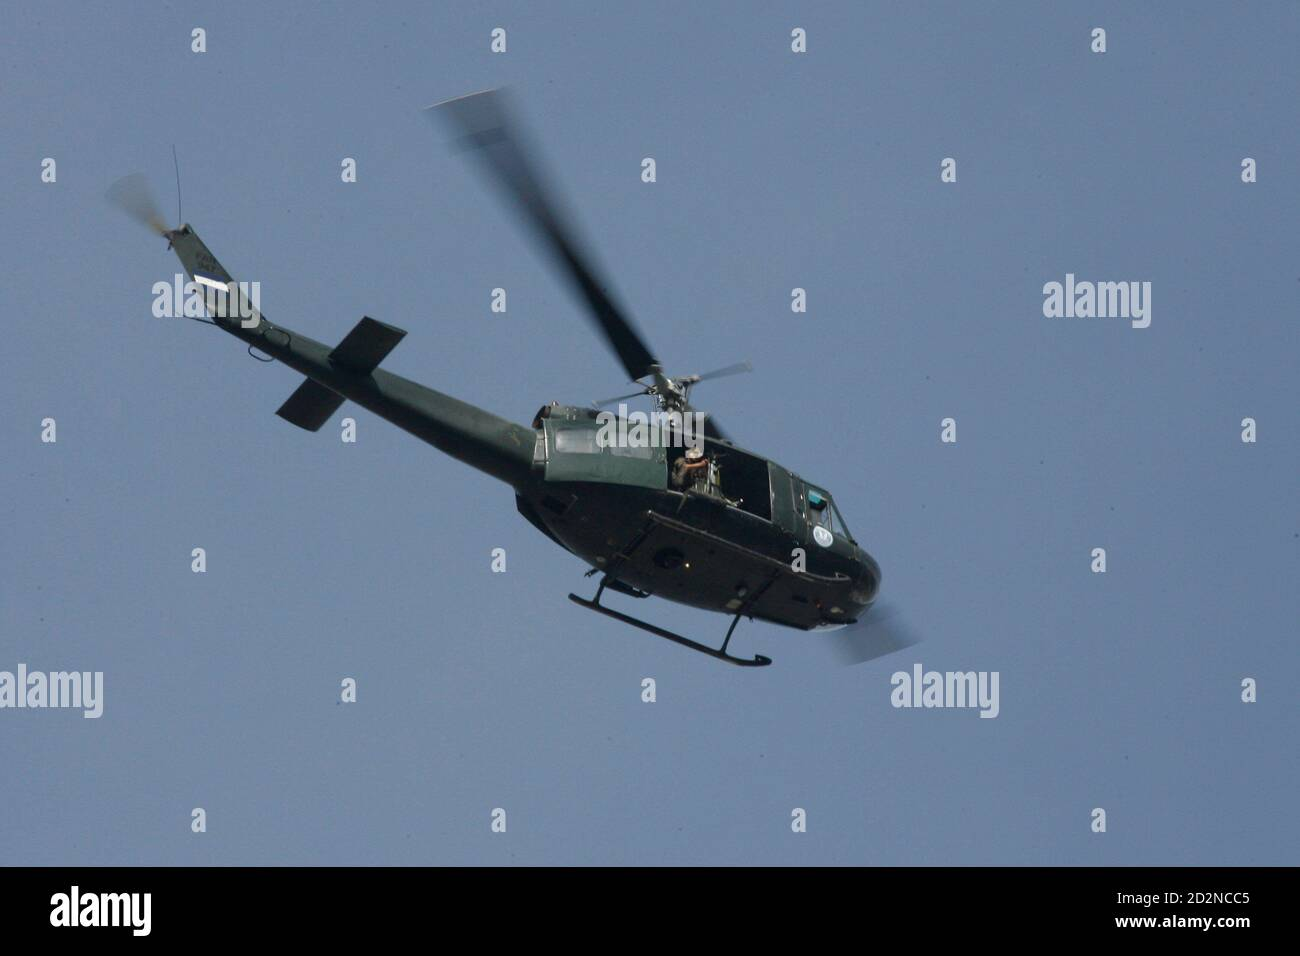 A Honduran army helicopter patrols overhead near the presidential residency in Tegucigalpa June 28, 2009. Witnesses said Honduras' President Manuel Zelaya was detained at home by troops in a constitutional crisis over his attempt to win re-election. CNN's Spanish-language channel later quoted Costa Rican officials as saying he was in Costa Rica and seeking political asylum. REUTERS/Oswaldo Rivas (HONDURAS POLITICS CONFLICT MILITARY) Stock Photo